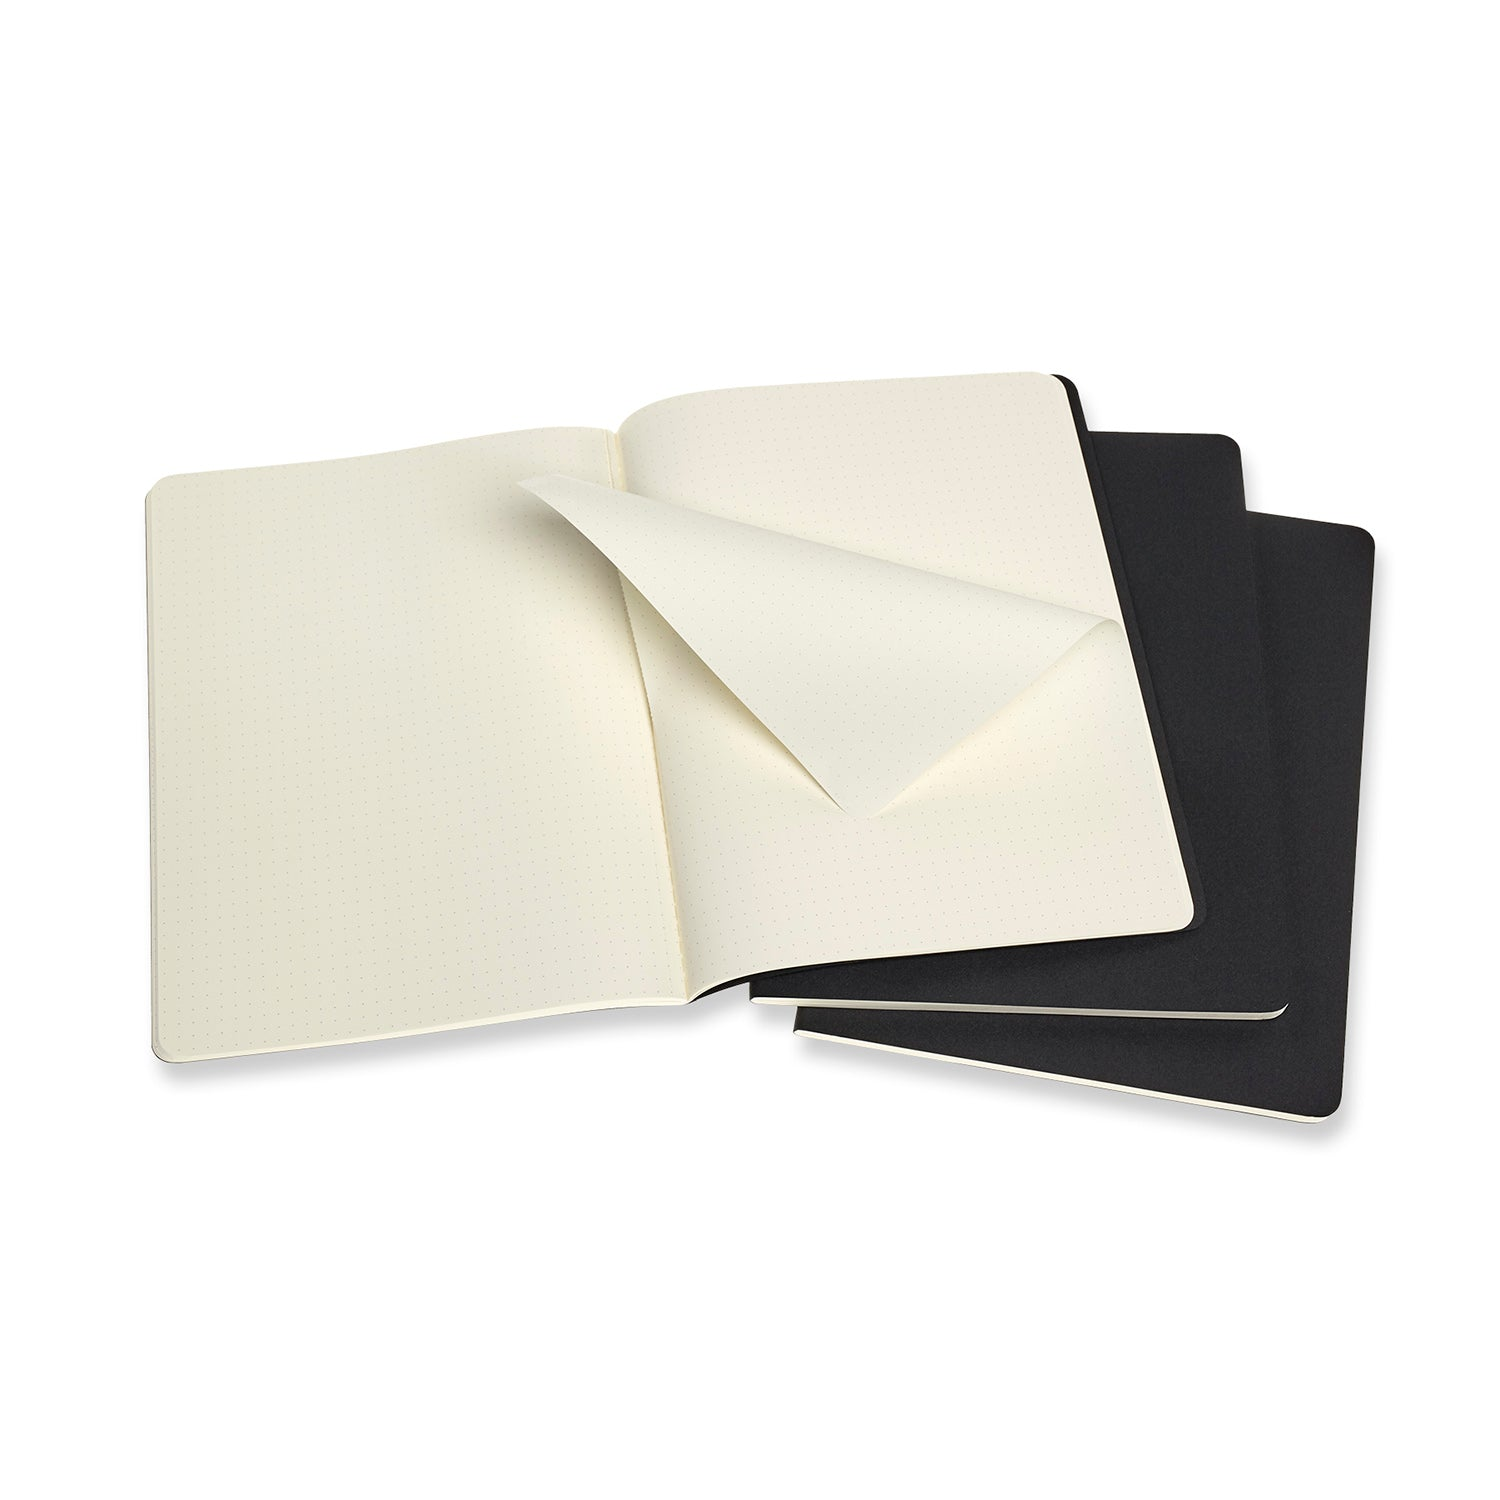 Moleskine Cahier Journals - 7.5 x 9.75 inches - Set of 3 Notebooks - by Moleskine - K. A. Artist Shop